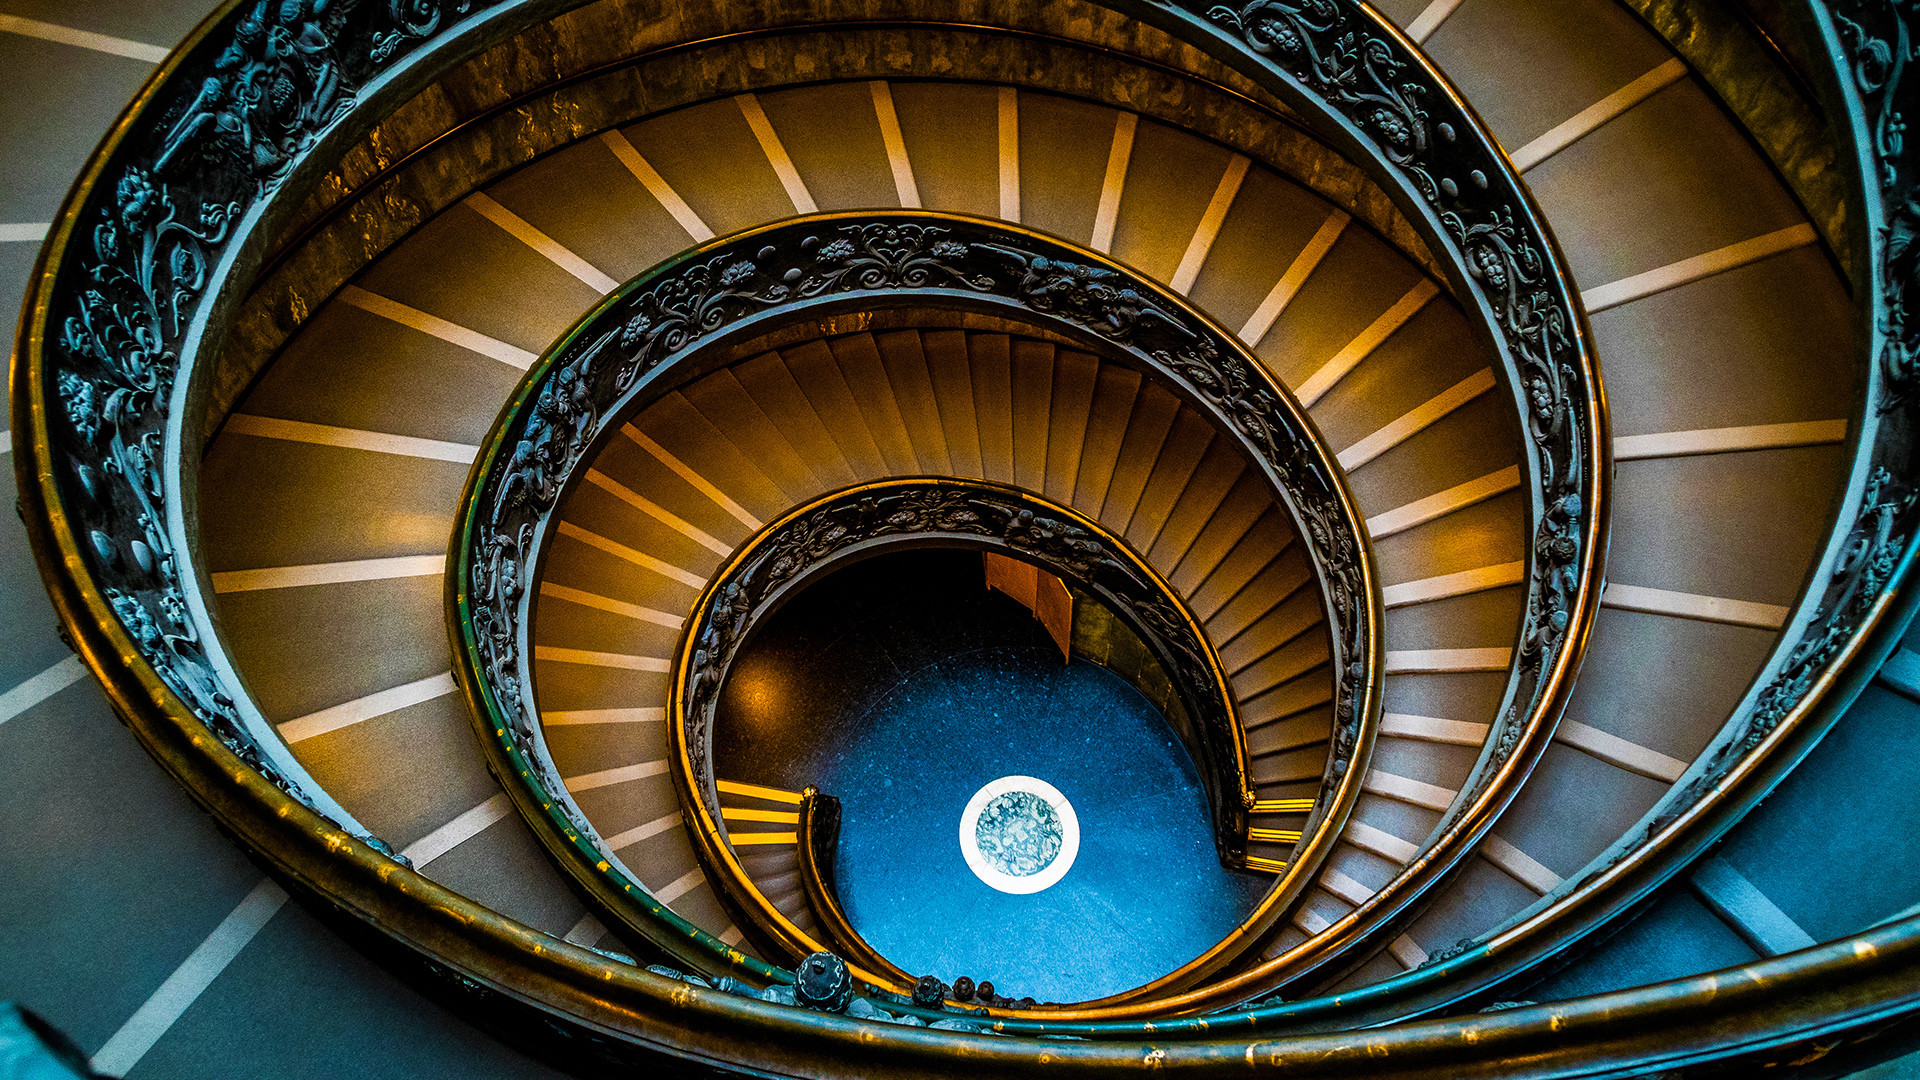 Res: 1920x1080, Vatican Spiral Staircase